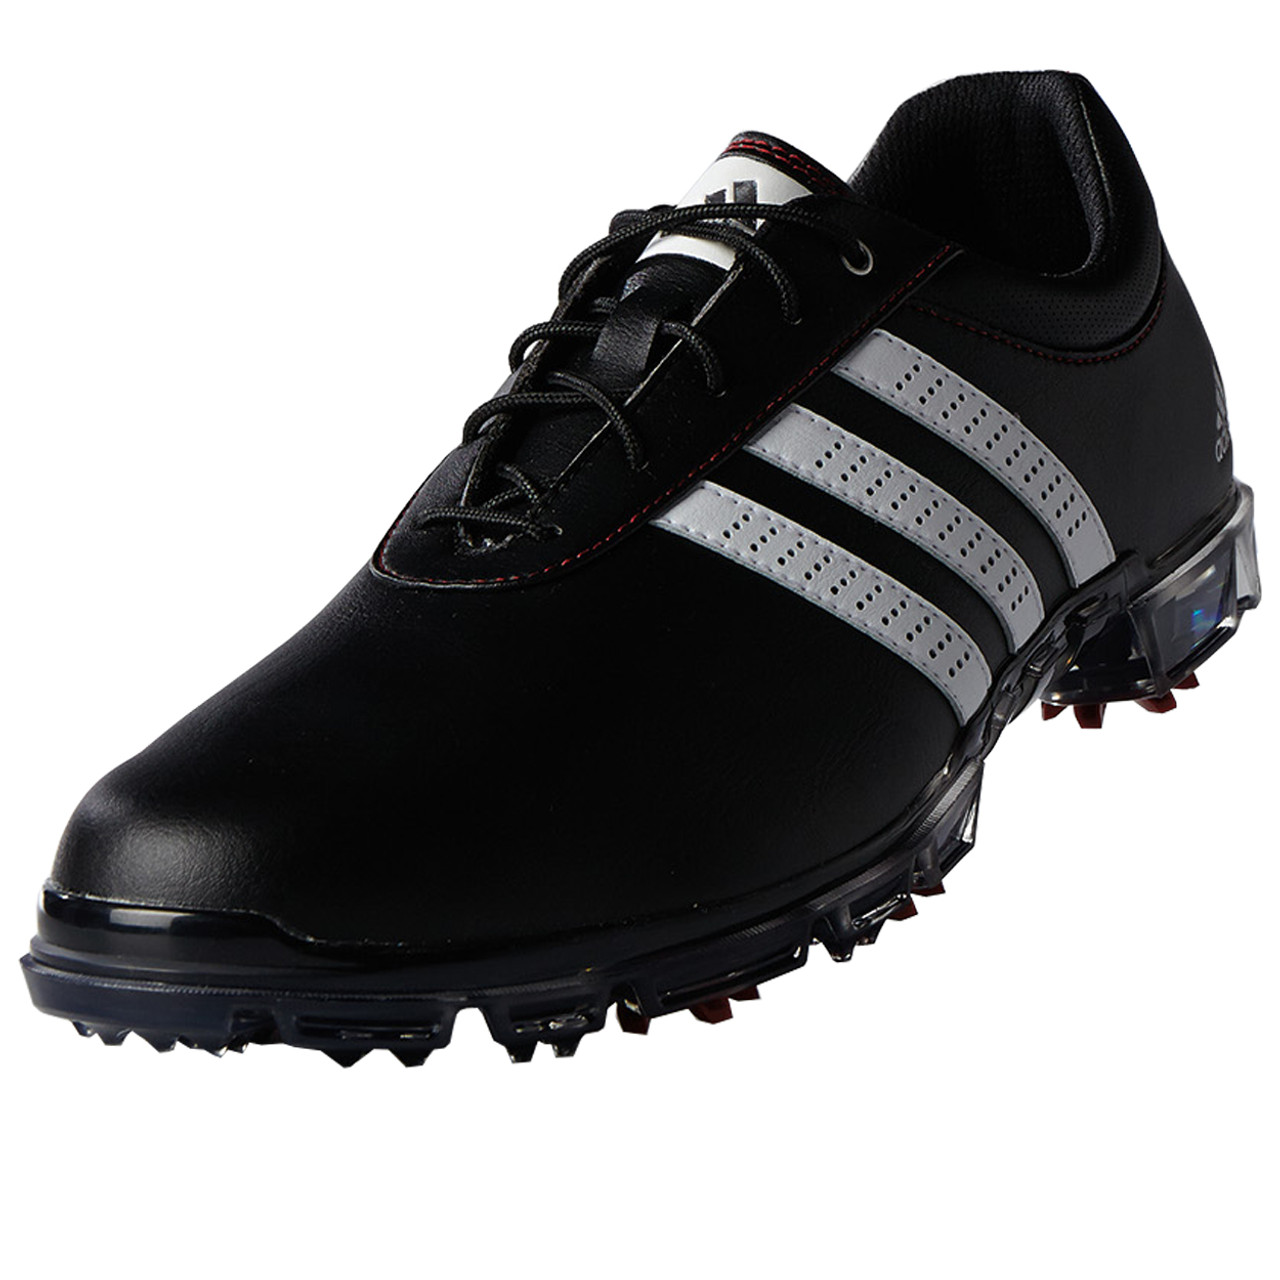 Adidas adipure Flex Golf Shoe